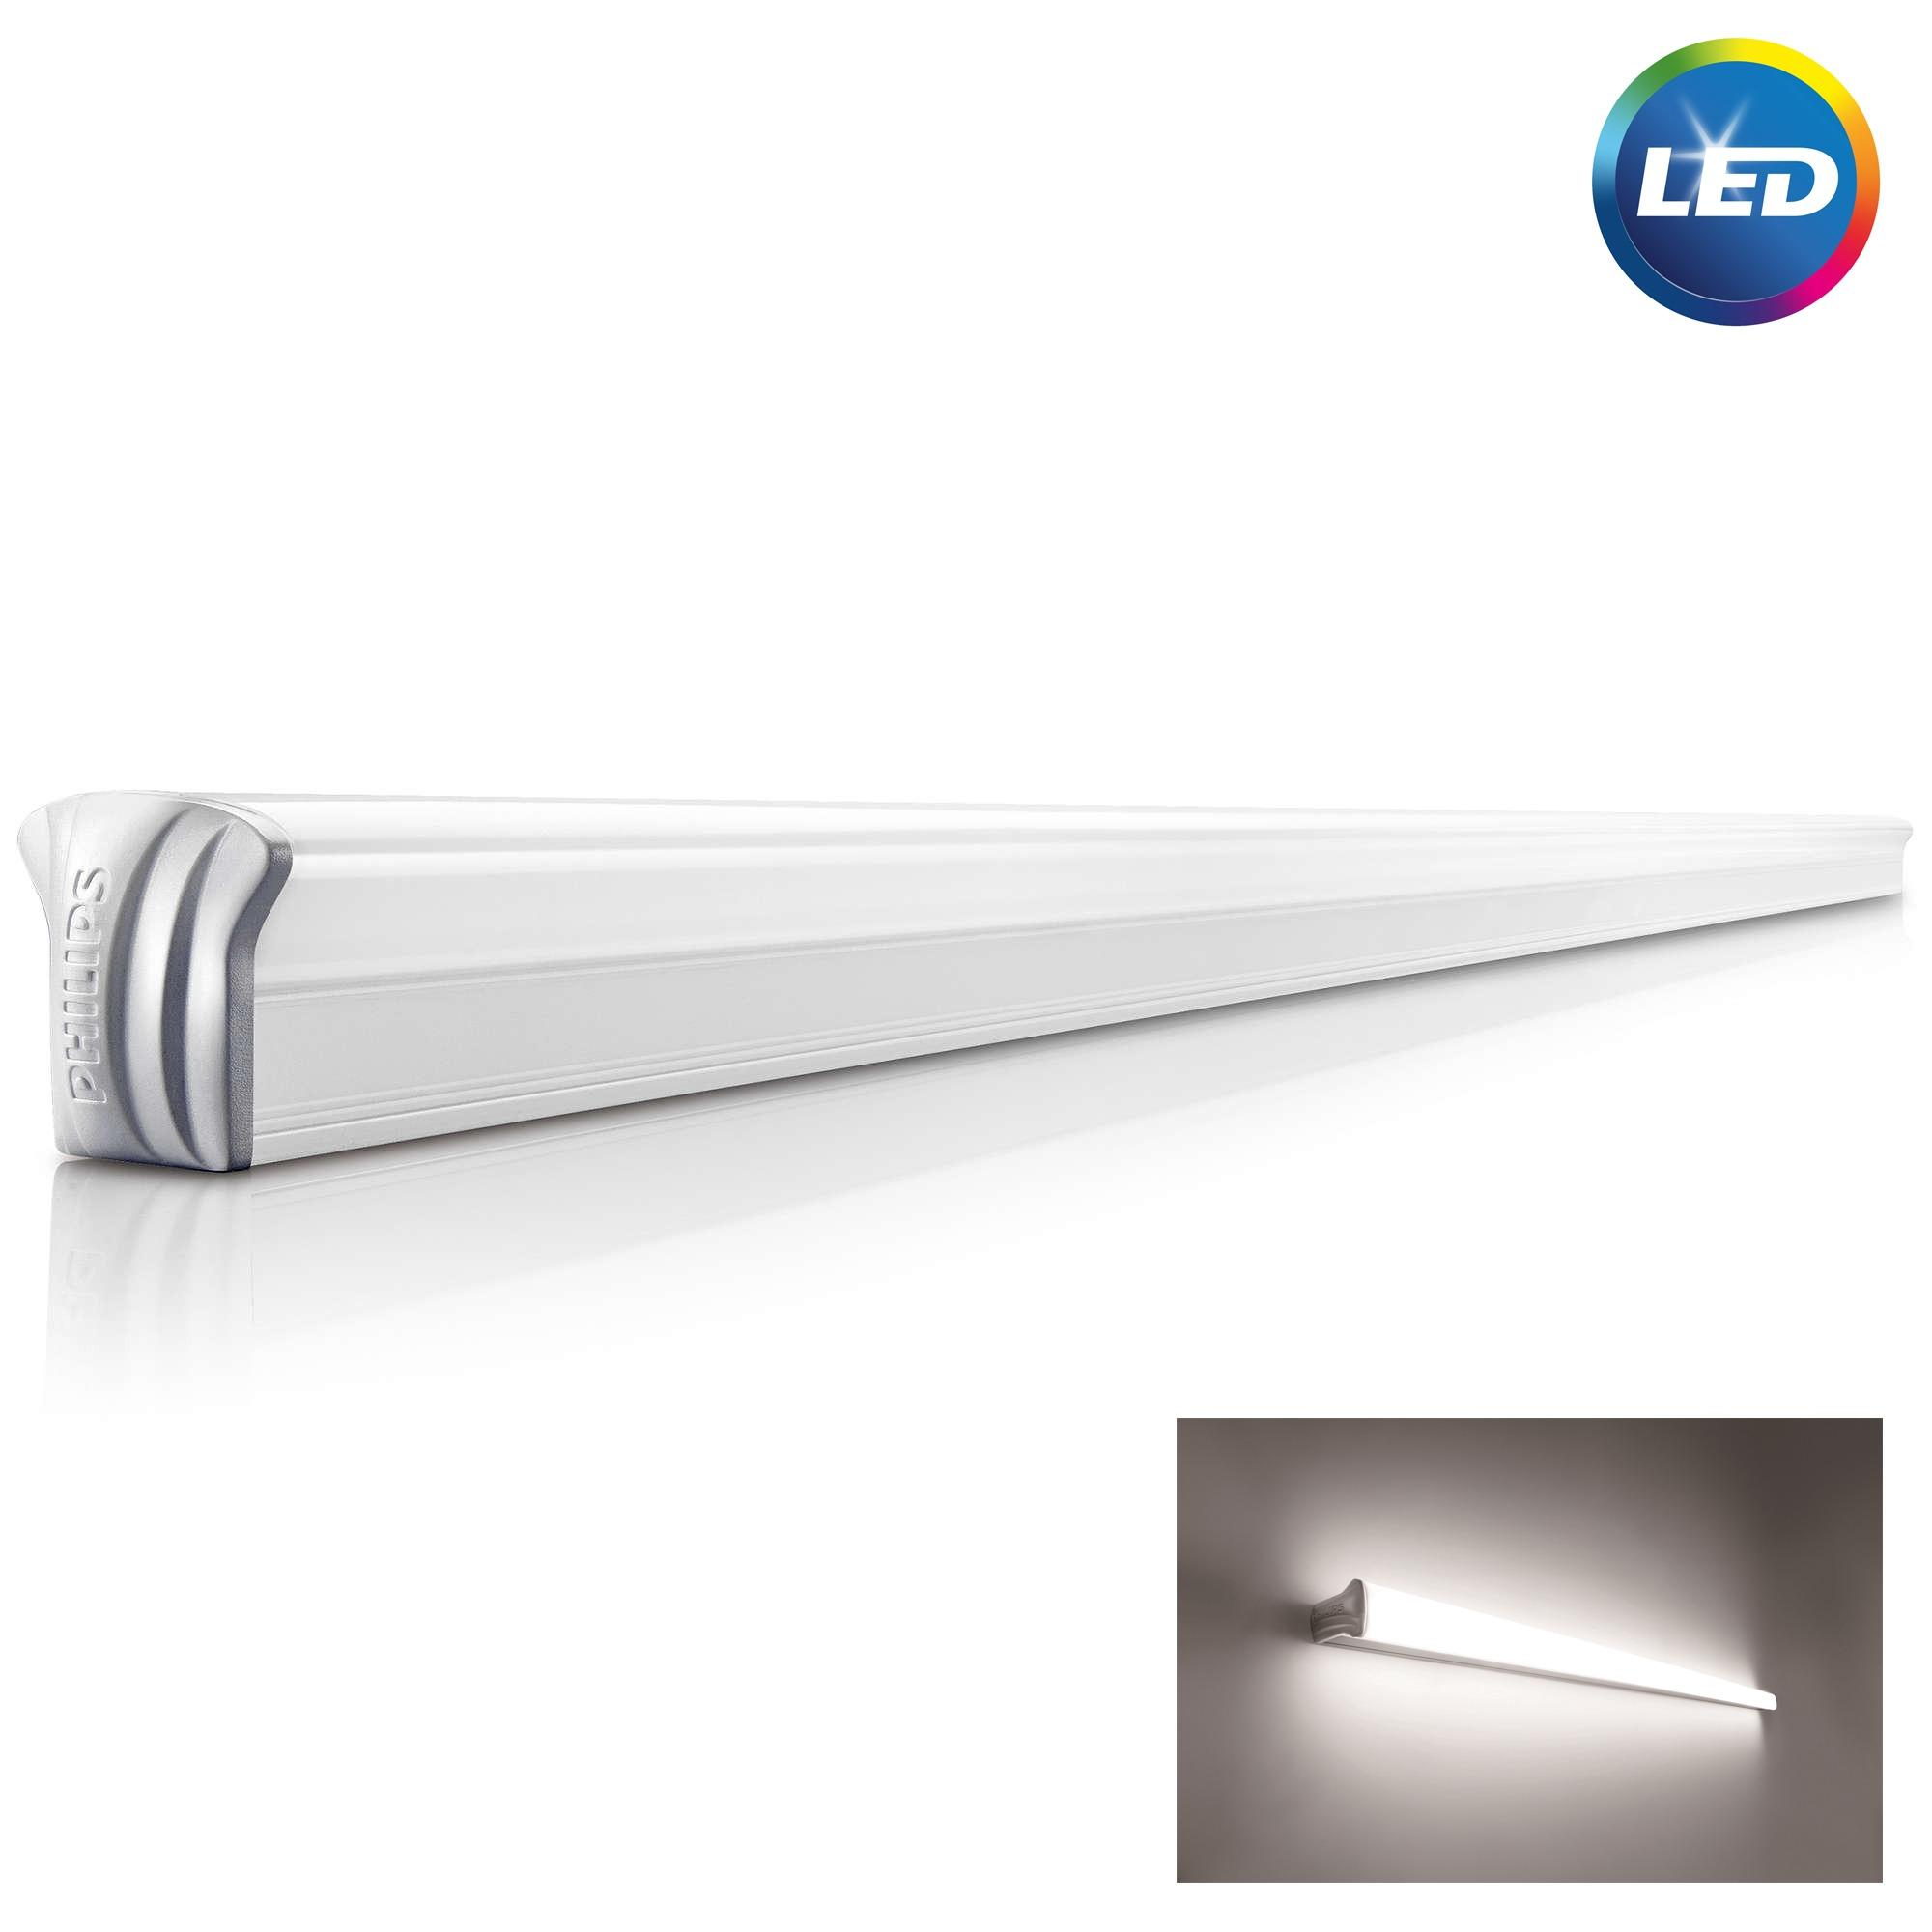 Mua Đen Tường Led Philips Shellline 31172 20W 6500K Anh Sang Trắng Philips